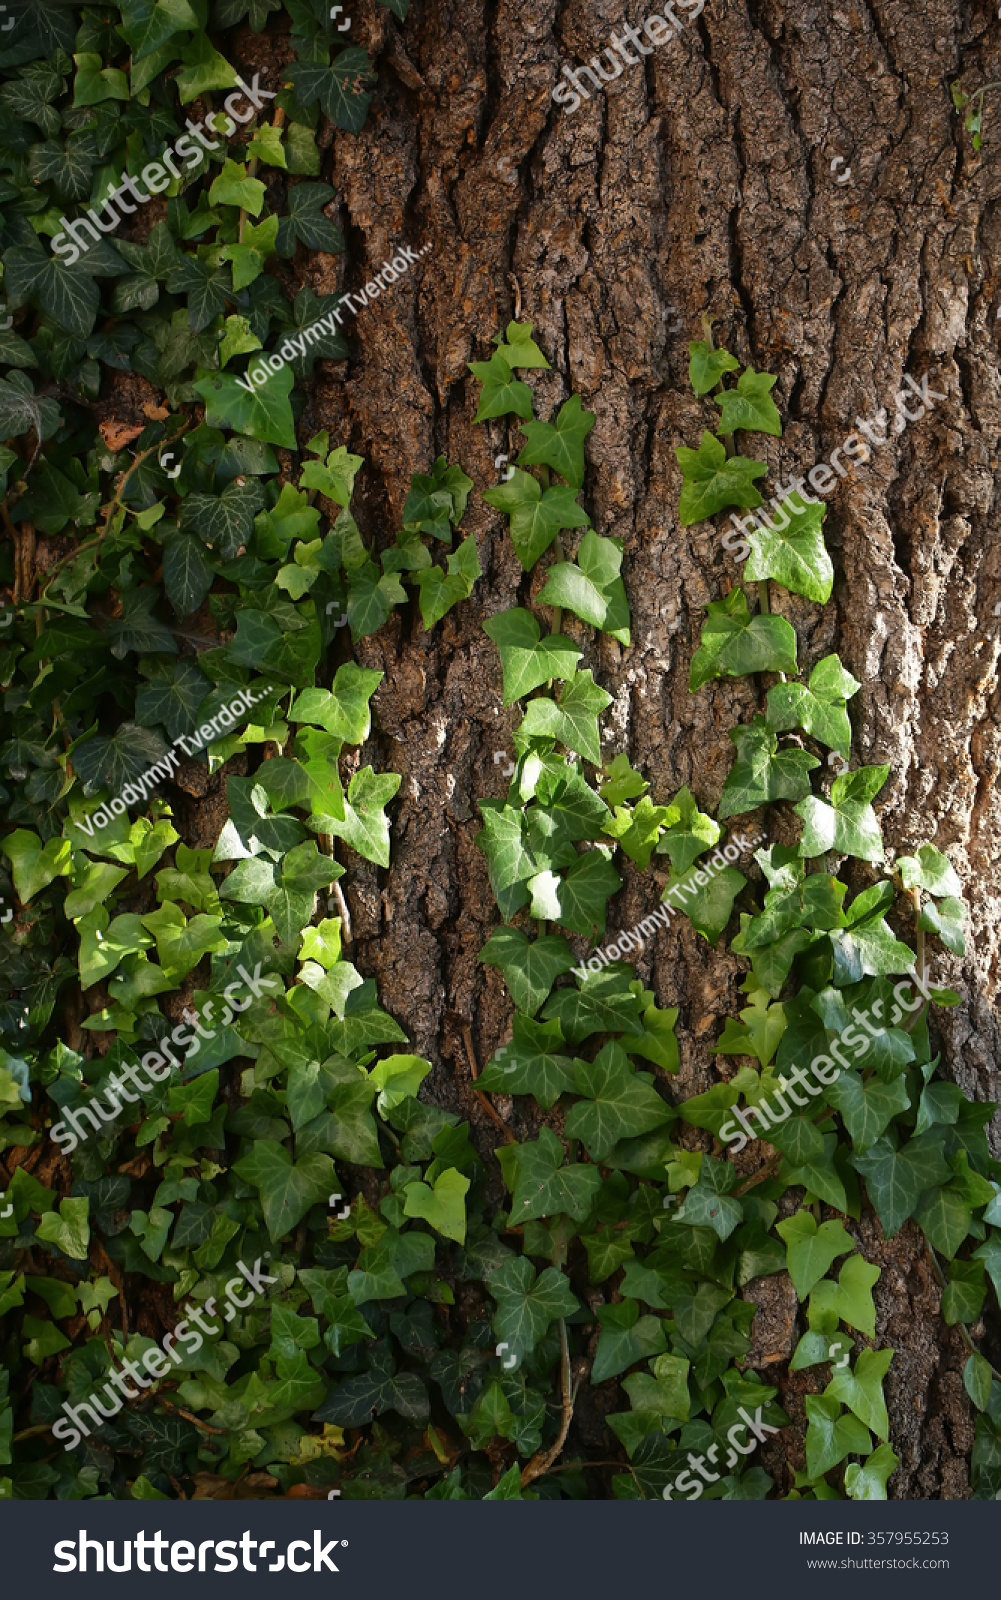 Brown Bark Of Tree Stem Entwine With Green Leaves Of Fresh ...  Brown Bark Of T...